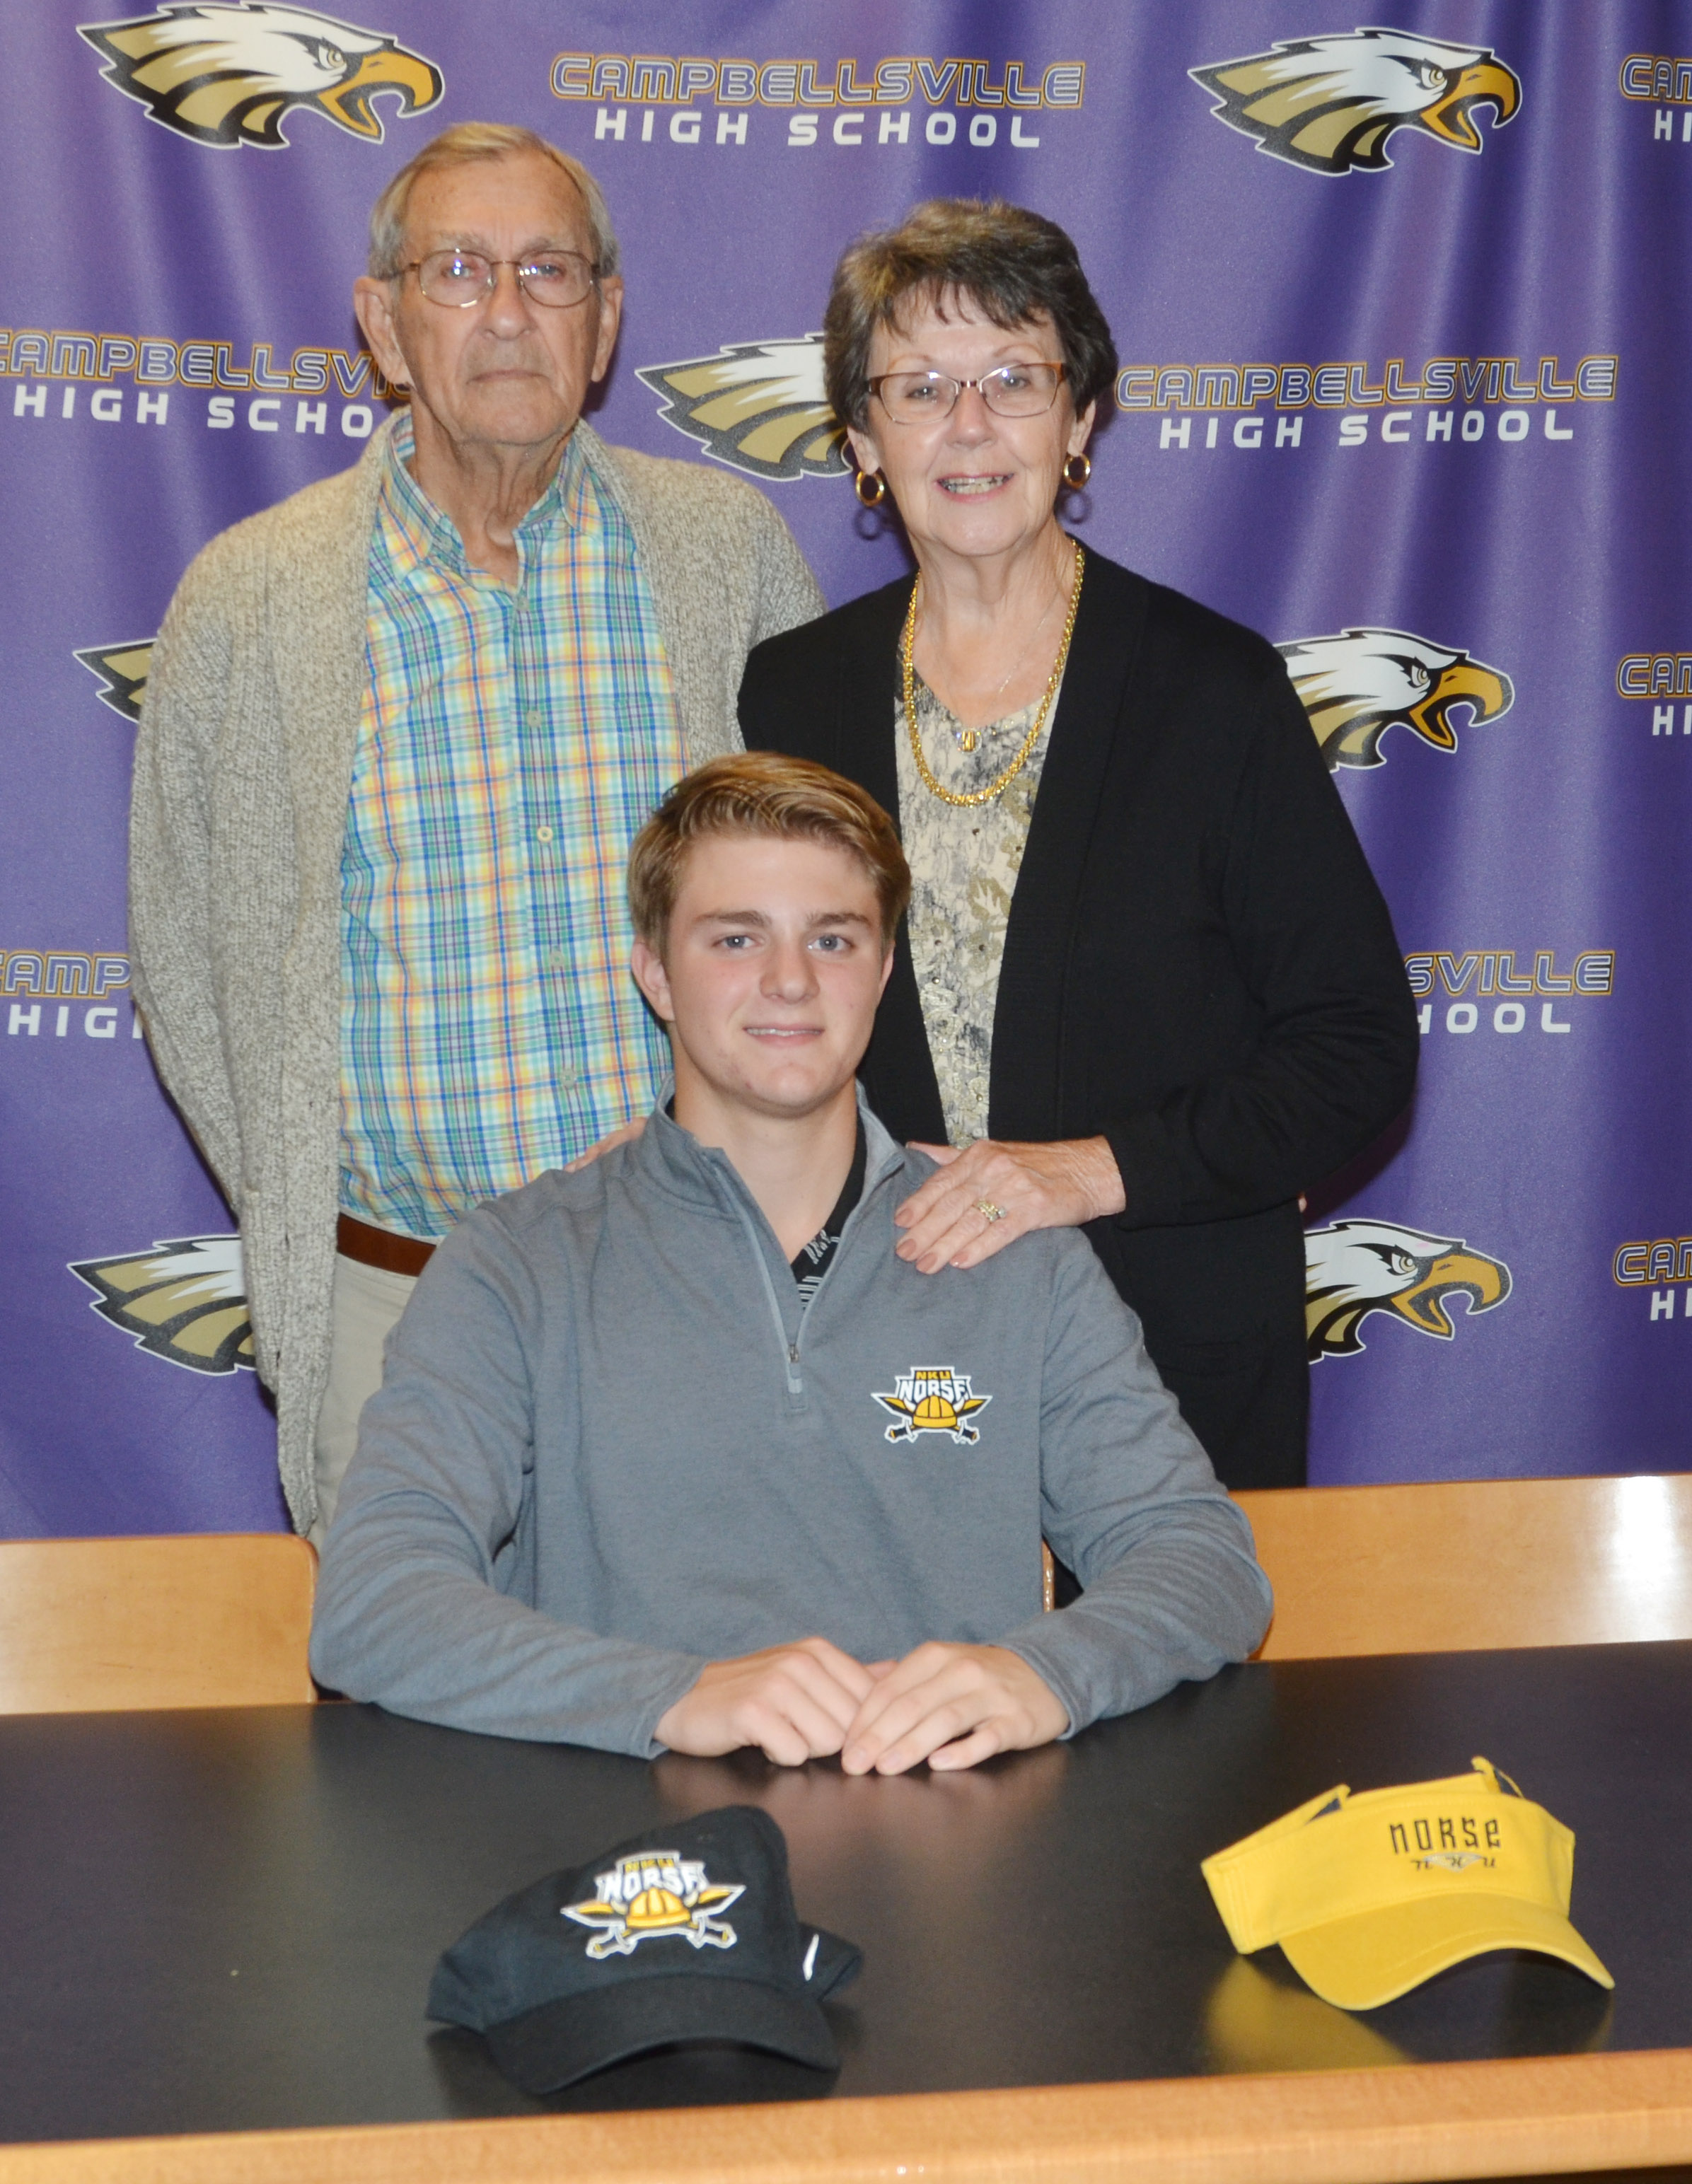 CHS boys' golf player Alex Doss will continue his academic and athletic career at Northern Kentucky University. He recently celebrated the announcement in a reception with his family and friends. Pictured with Doss with his grandparents.